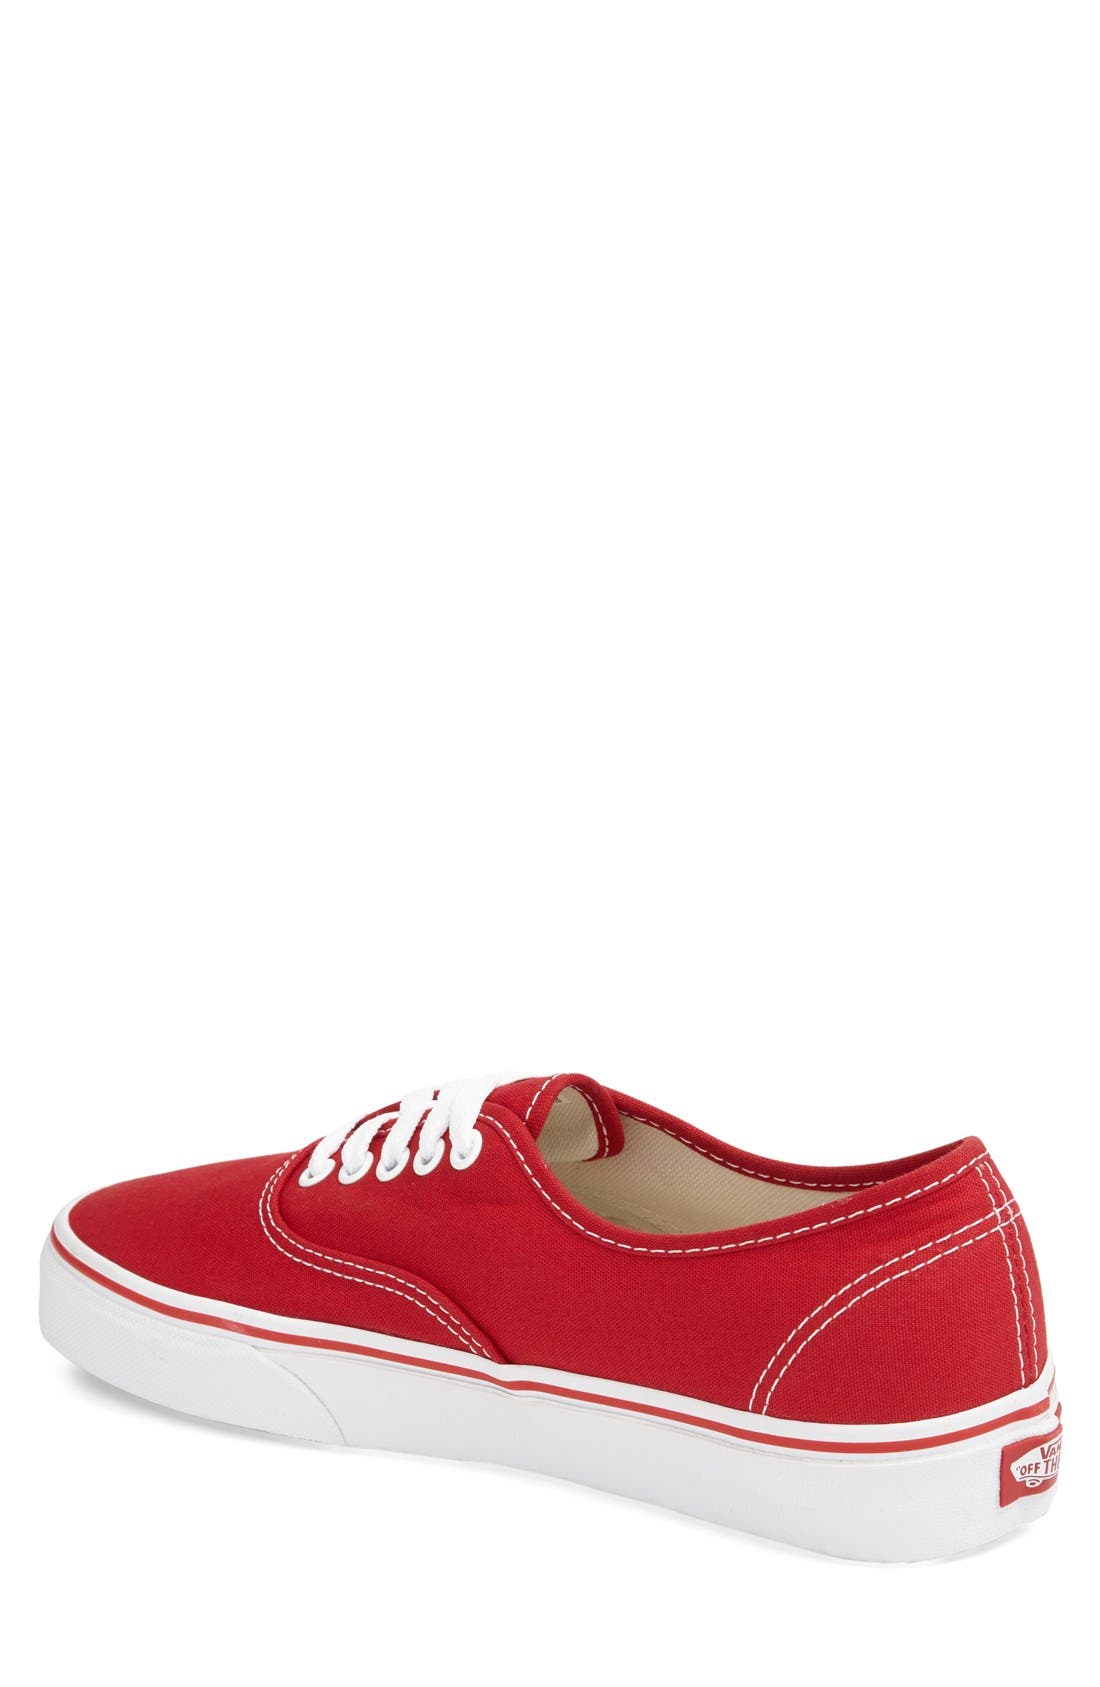 Alternate Image 2  - Vans 'Authentic' Sneaker (Men)